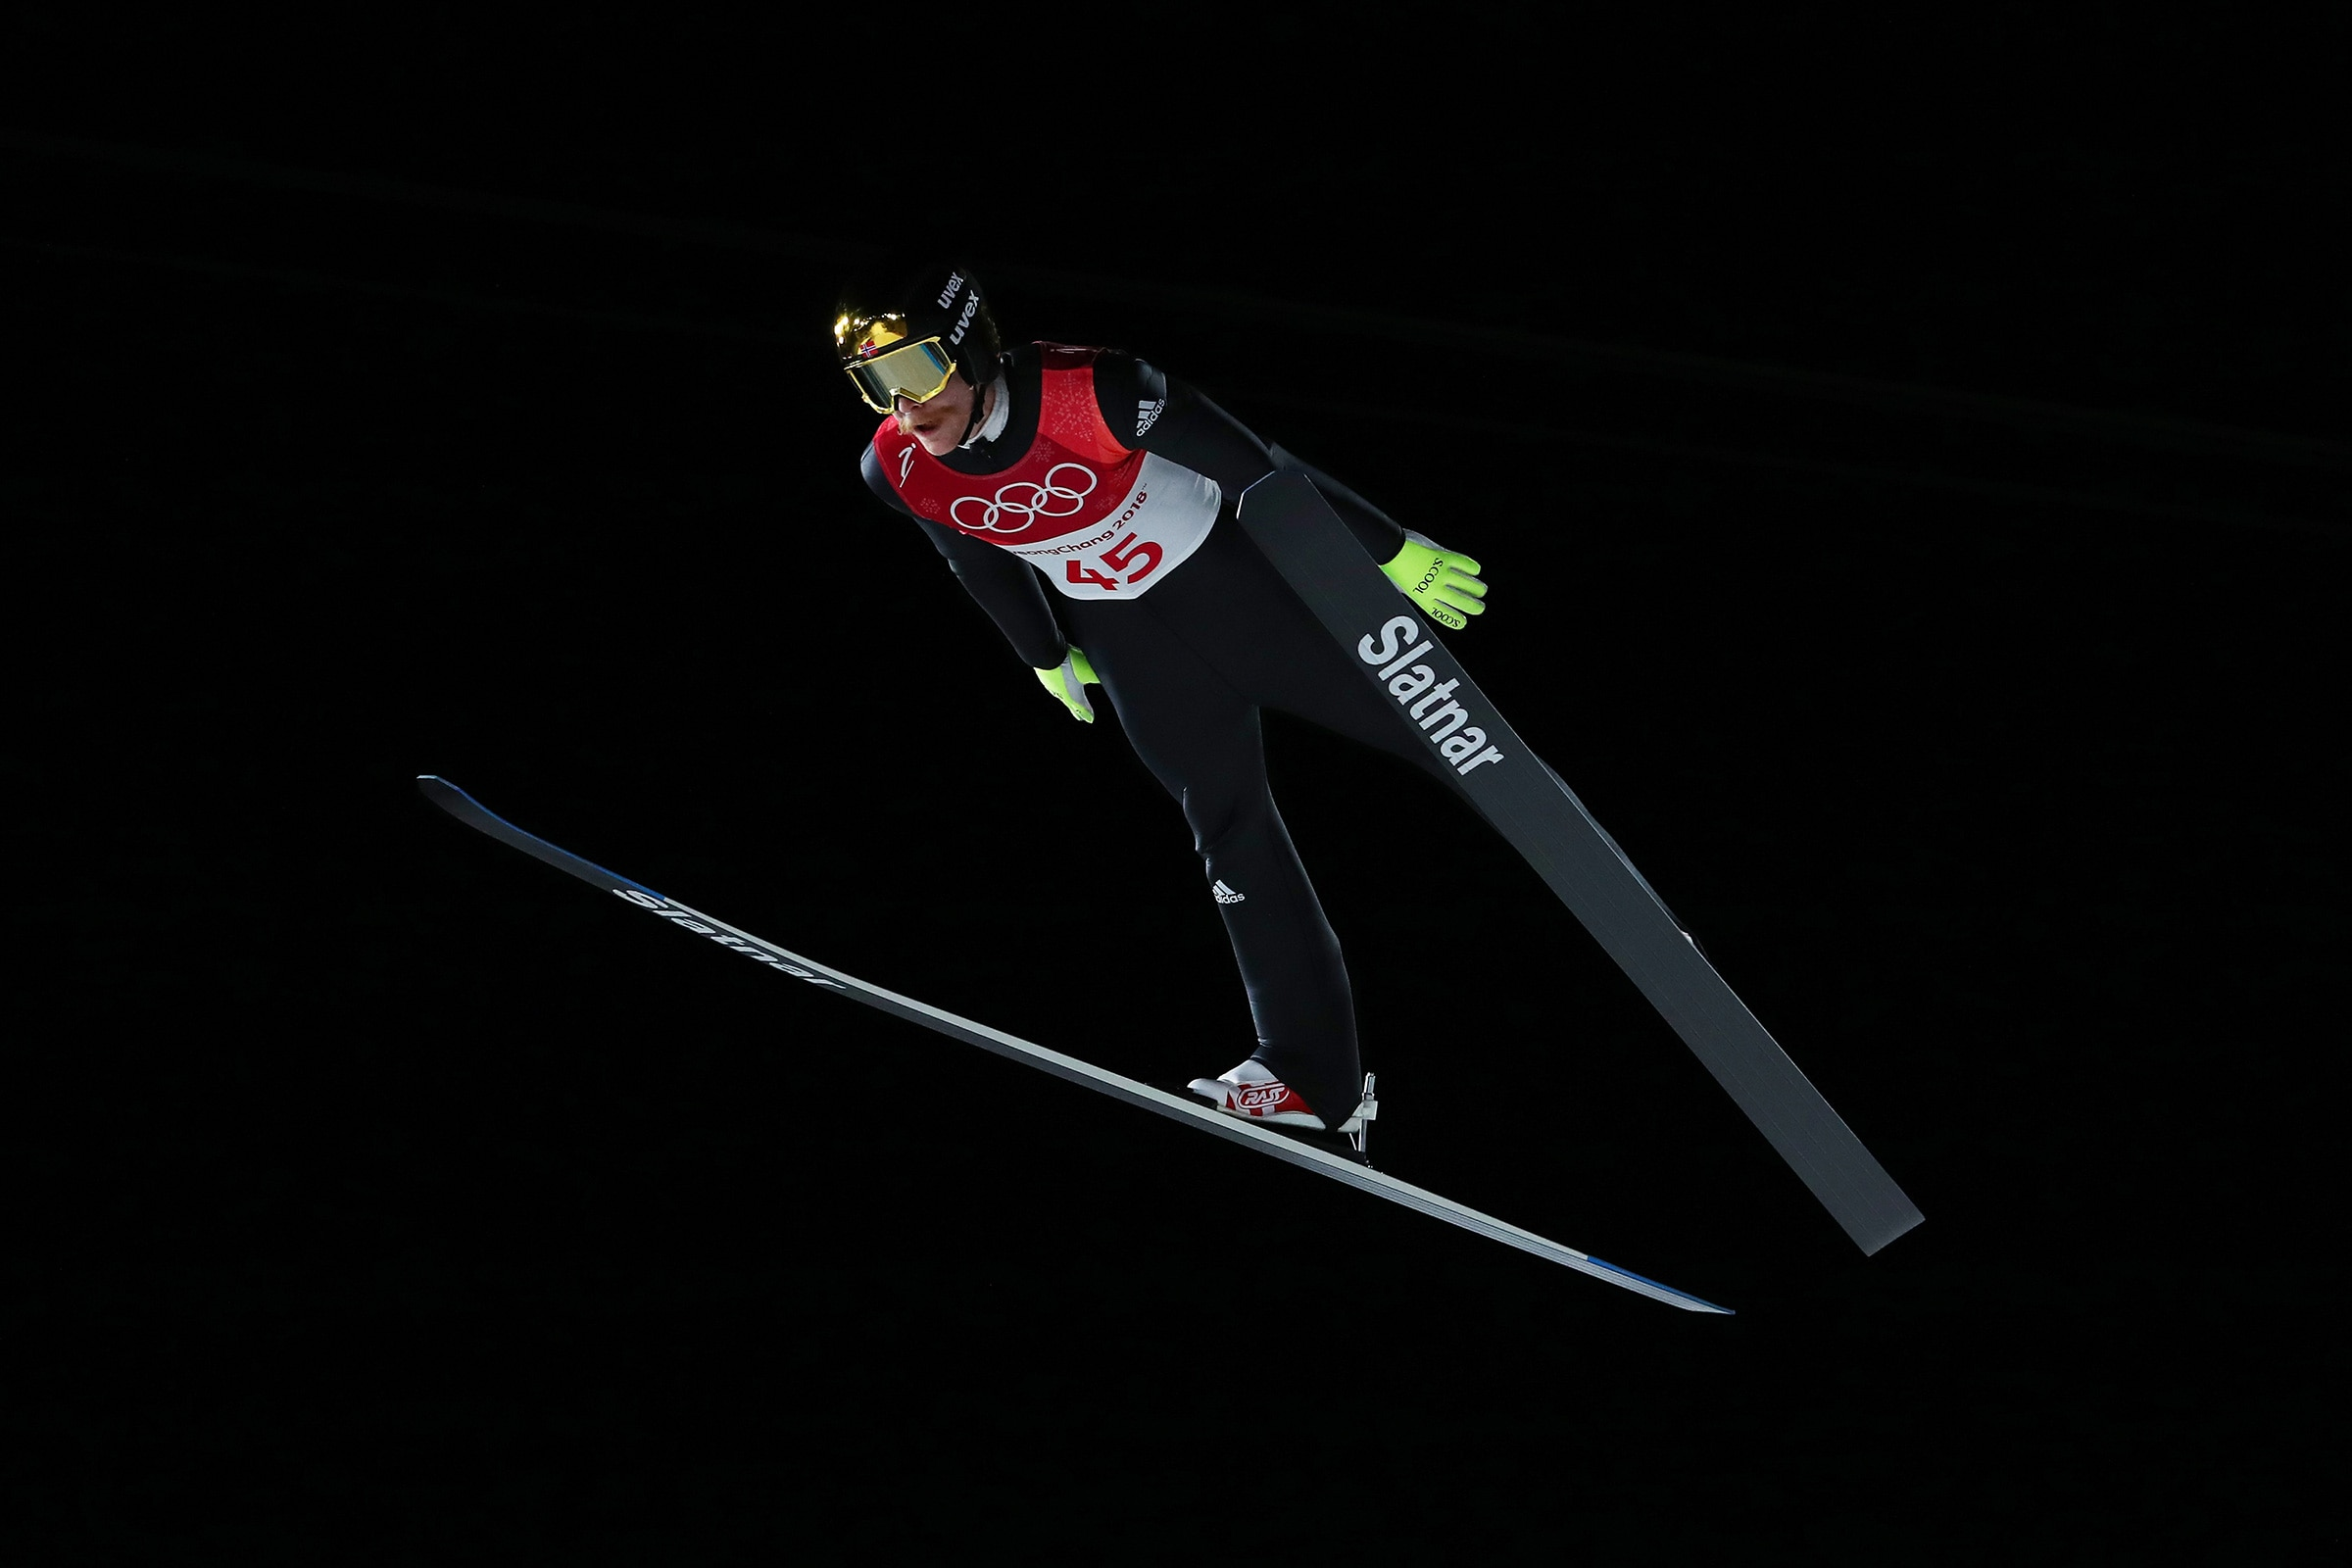 Ski Jumping - Men's Large Hill Individual